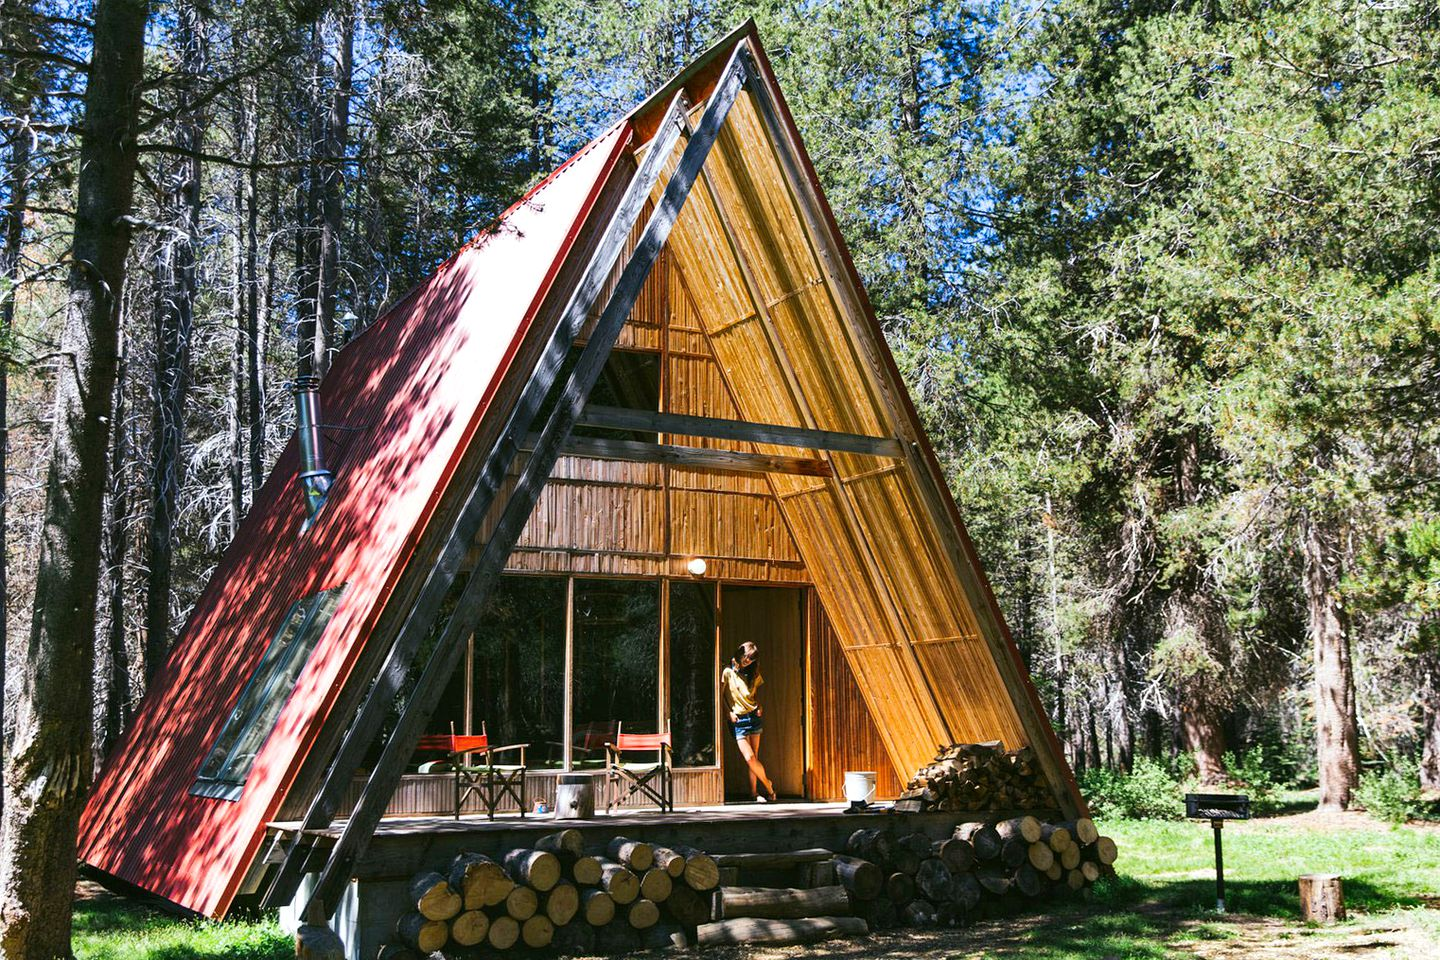 A-Frame cabins: Yosemite vacations